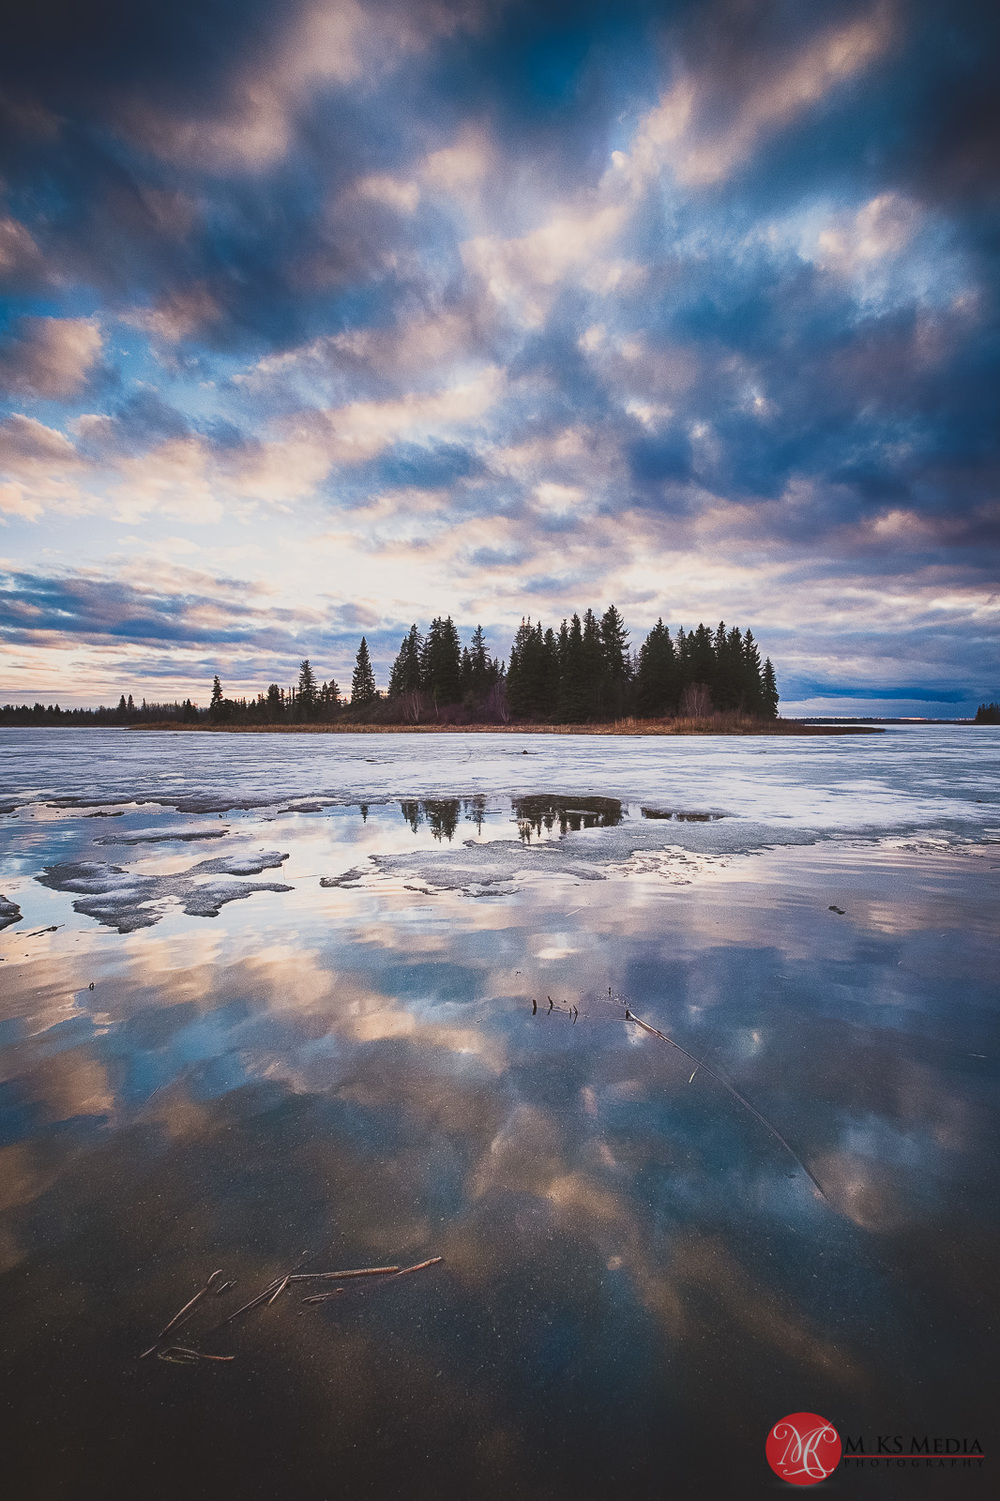 fuji,landscape,10-24,wide,alberta,outdoors,